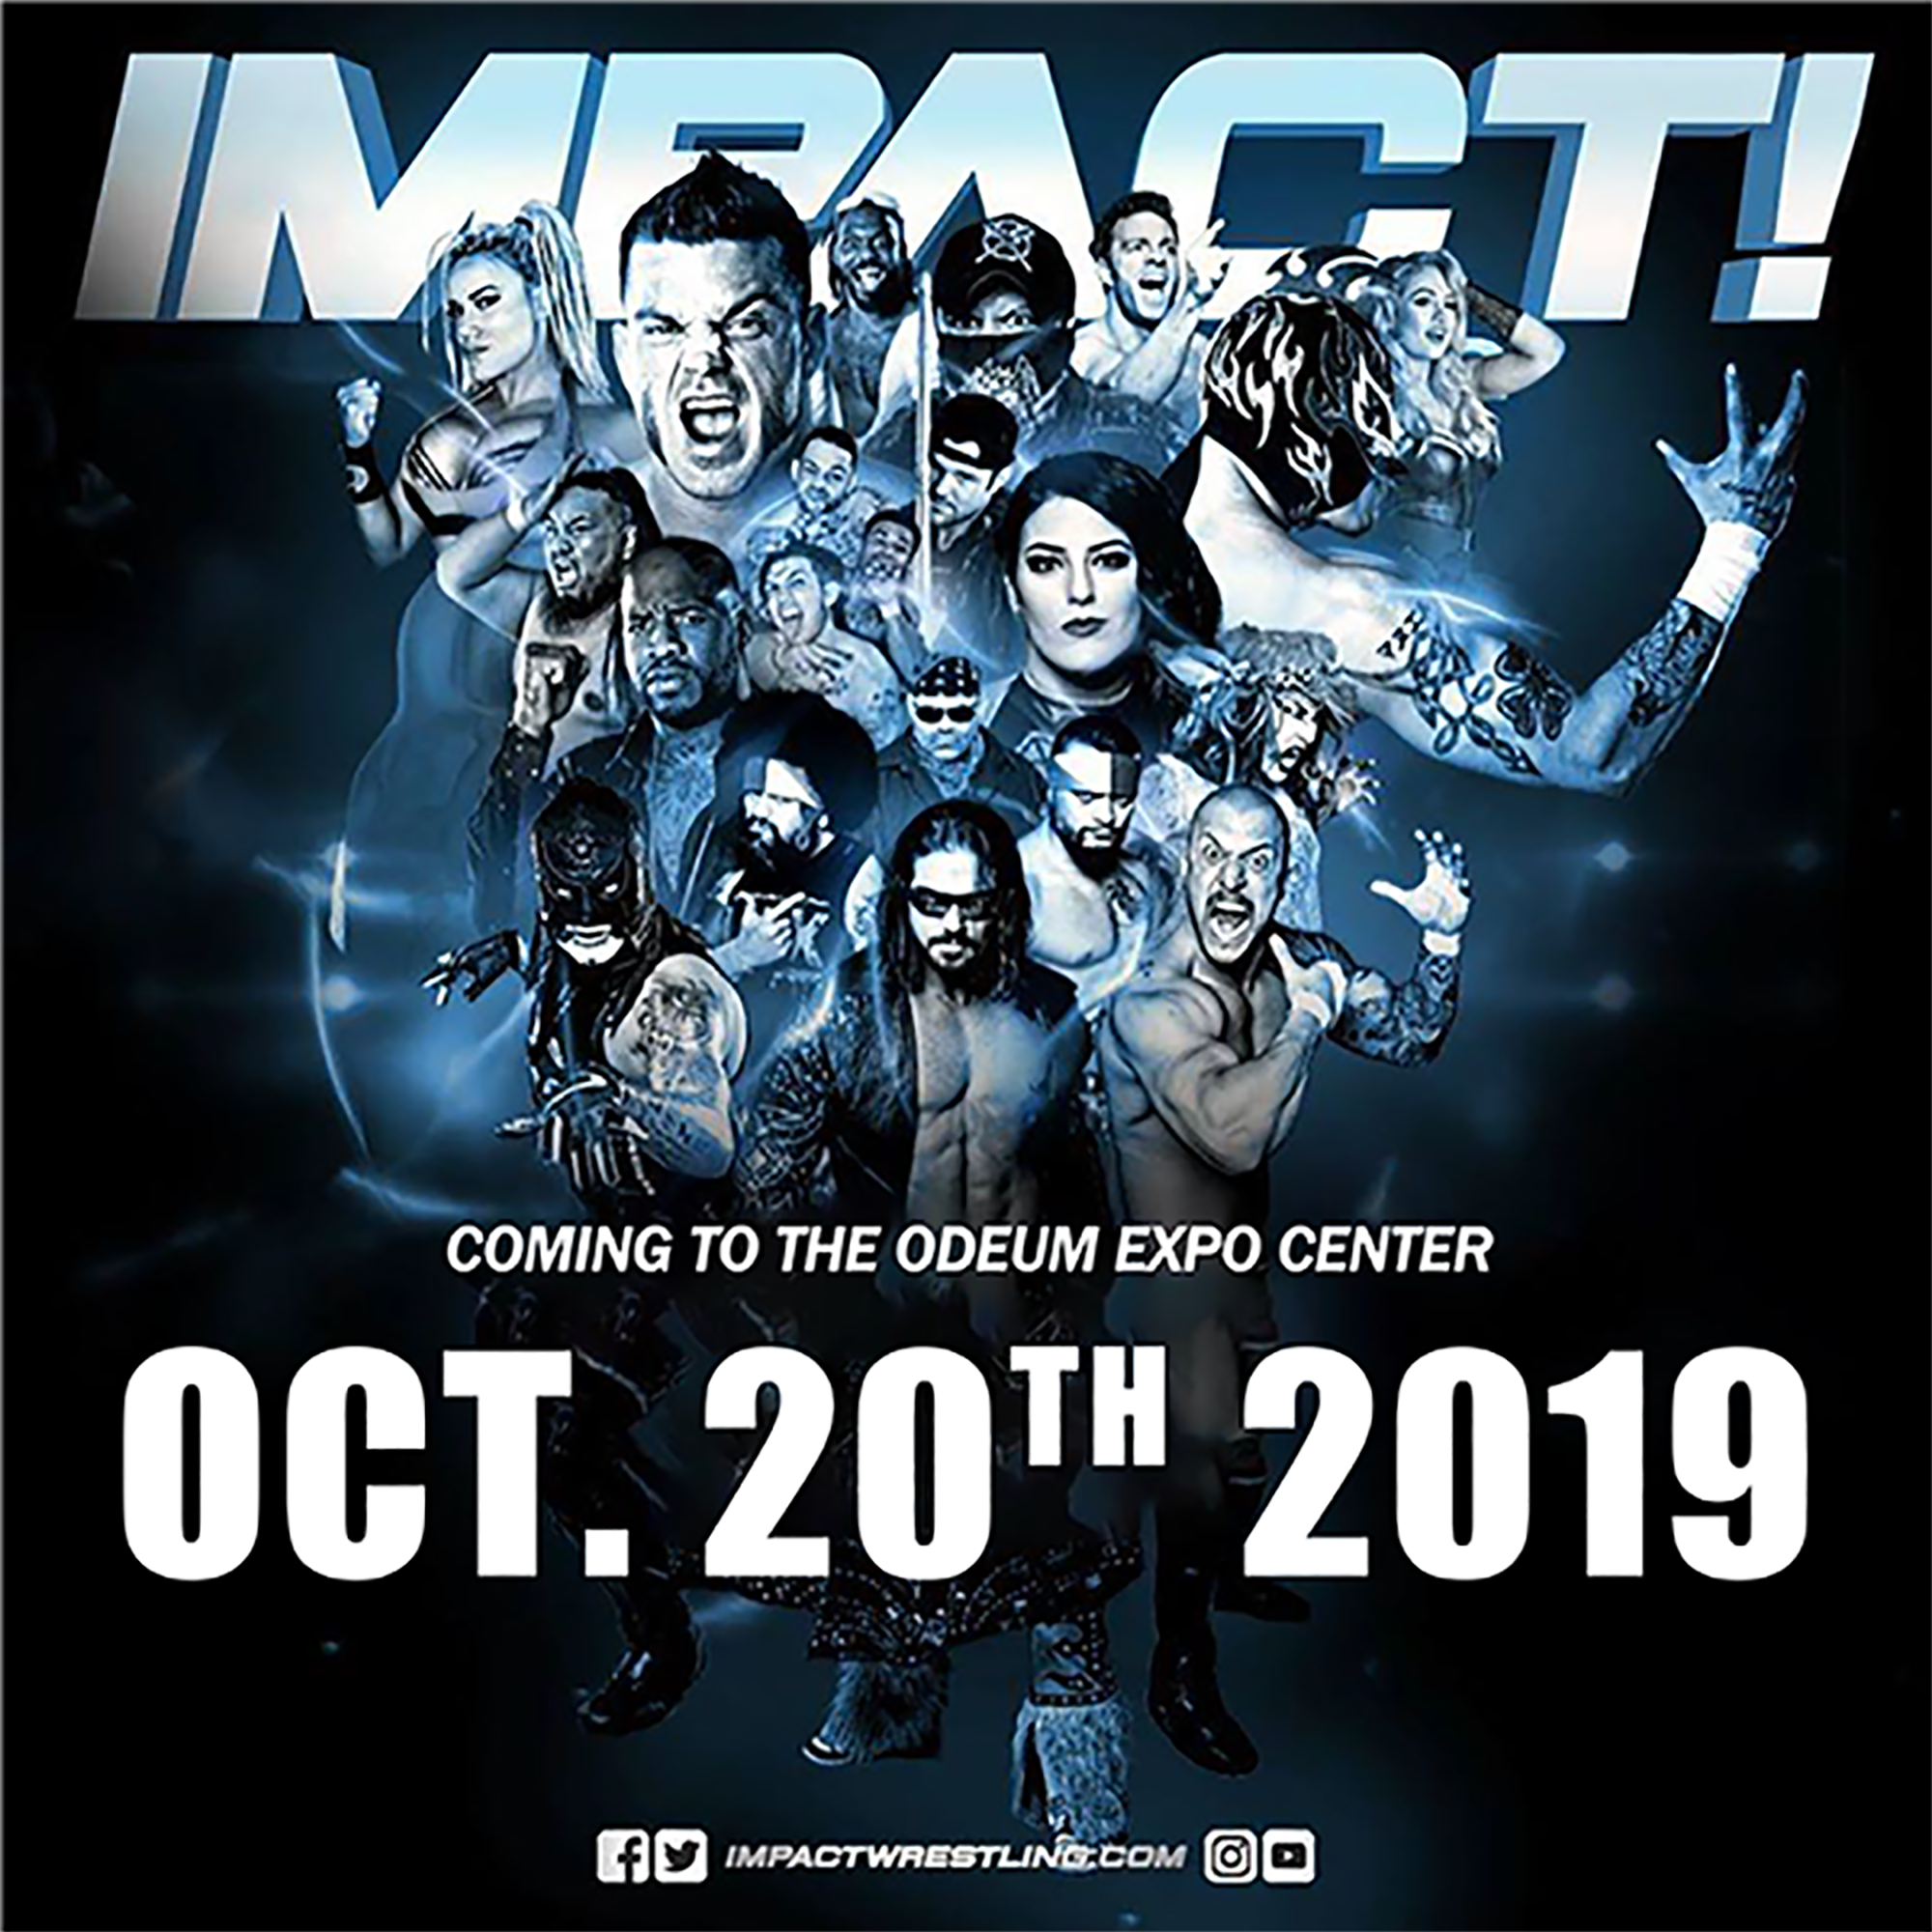 Image of Impact Wrestling wrestlers at the Odeum Expo Center October 20, 2019